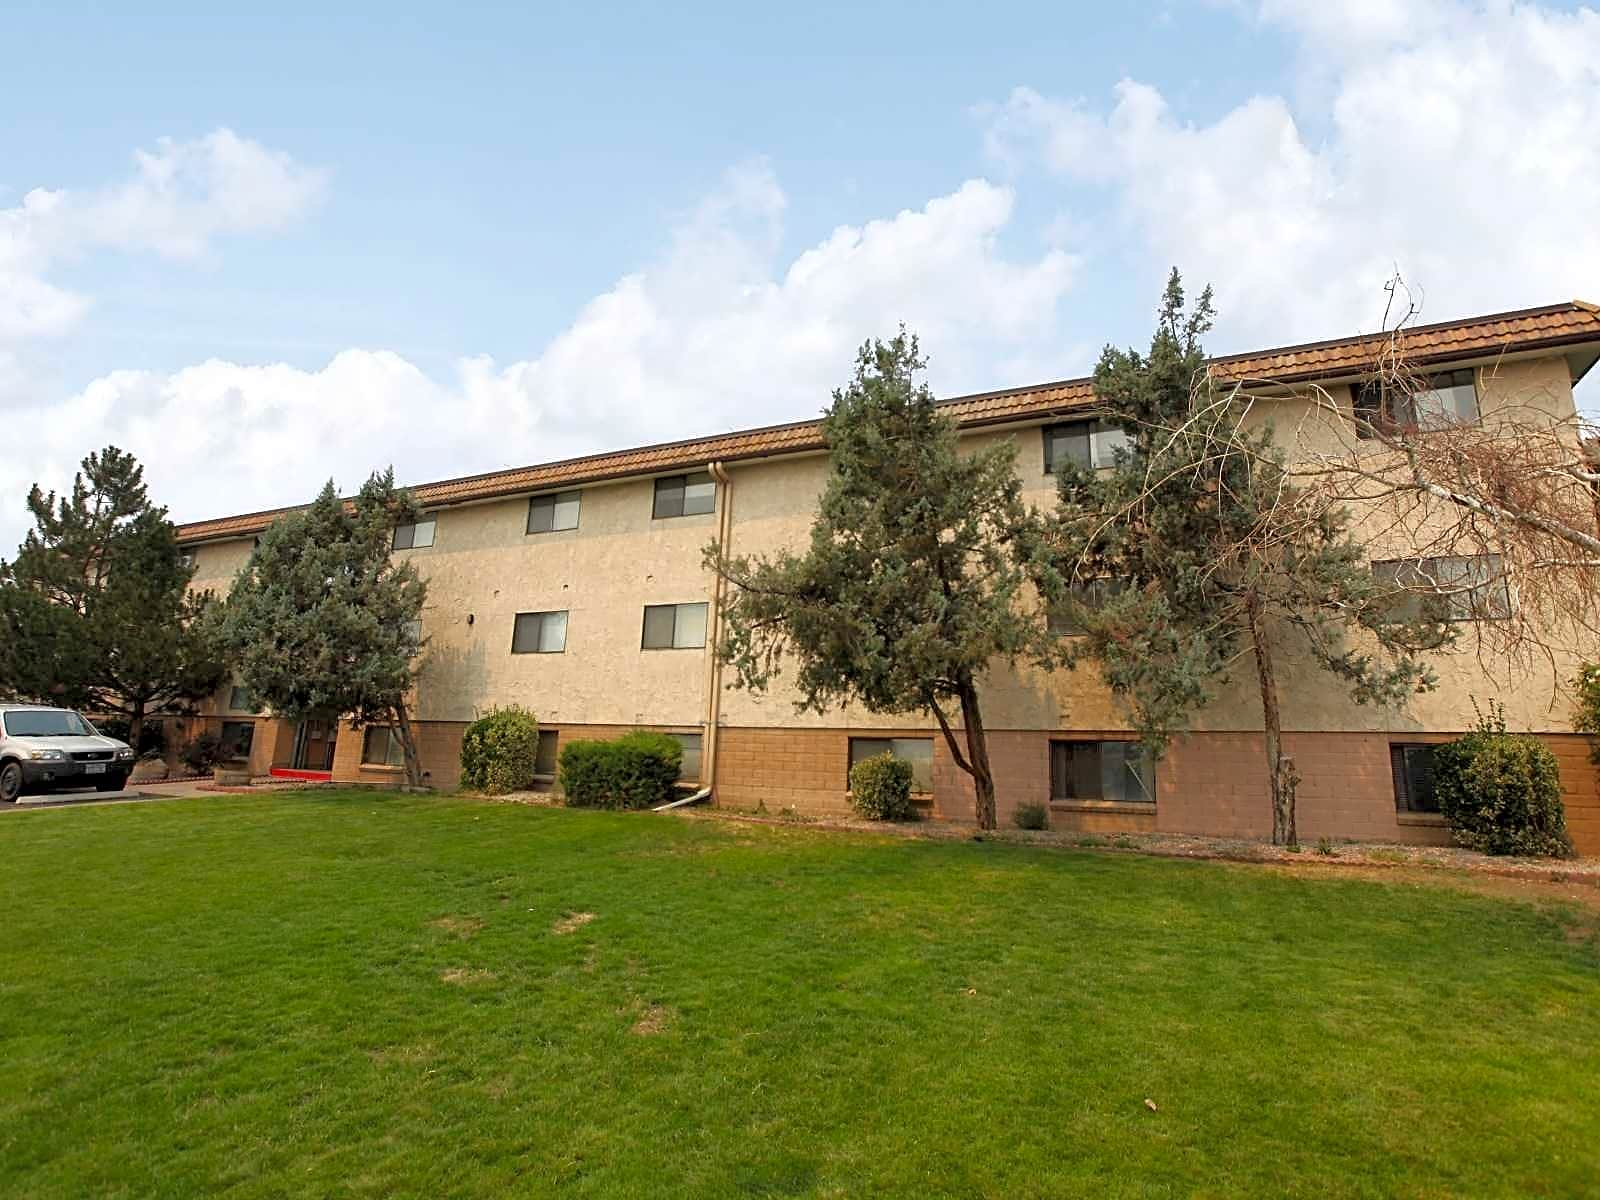 Photo: Reno Apartment for Rent - $599.00 / month; 2 Bd & 1 Ba